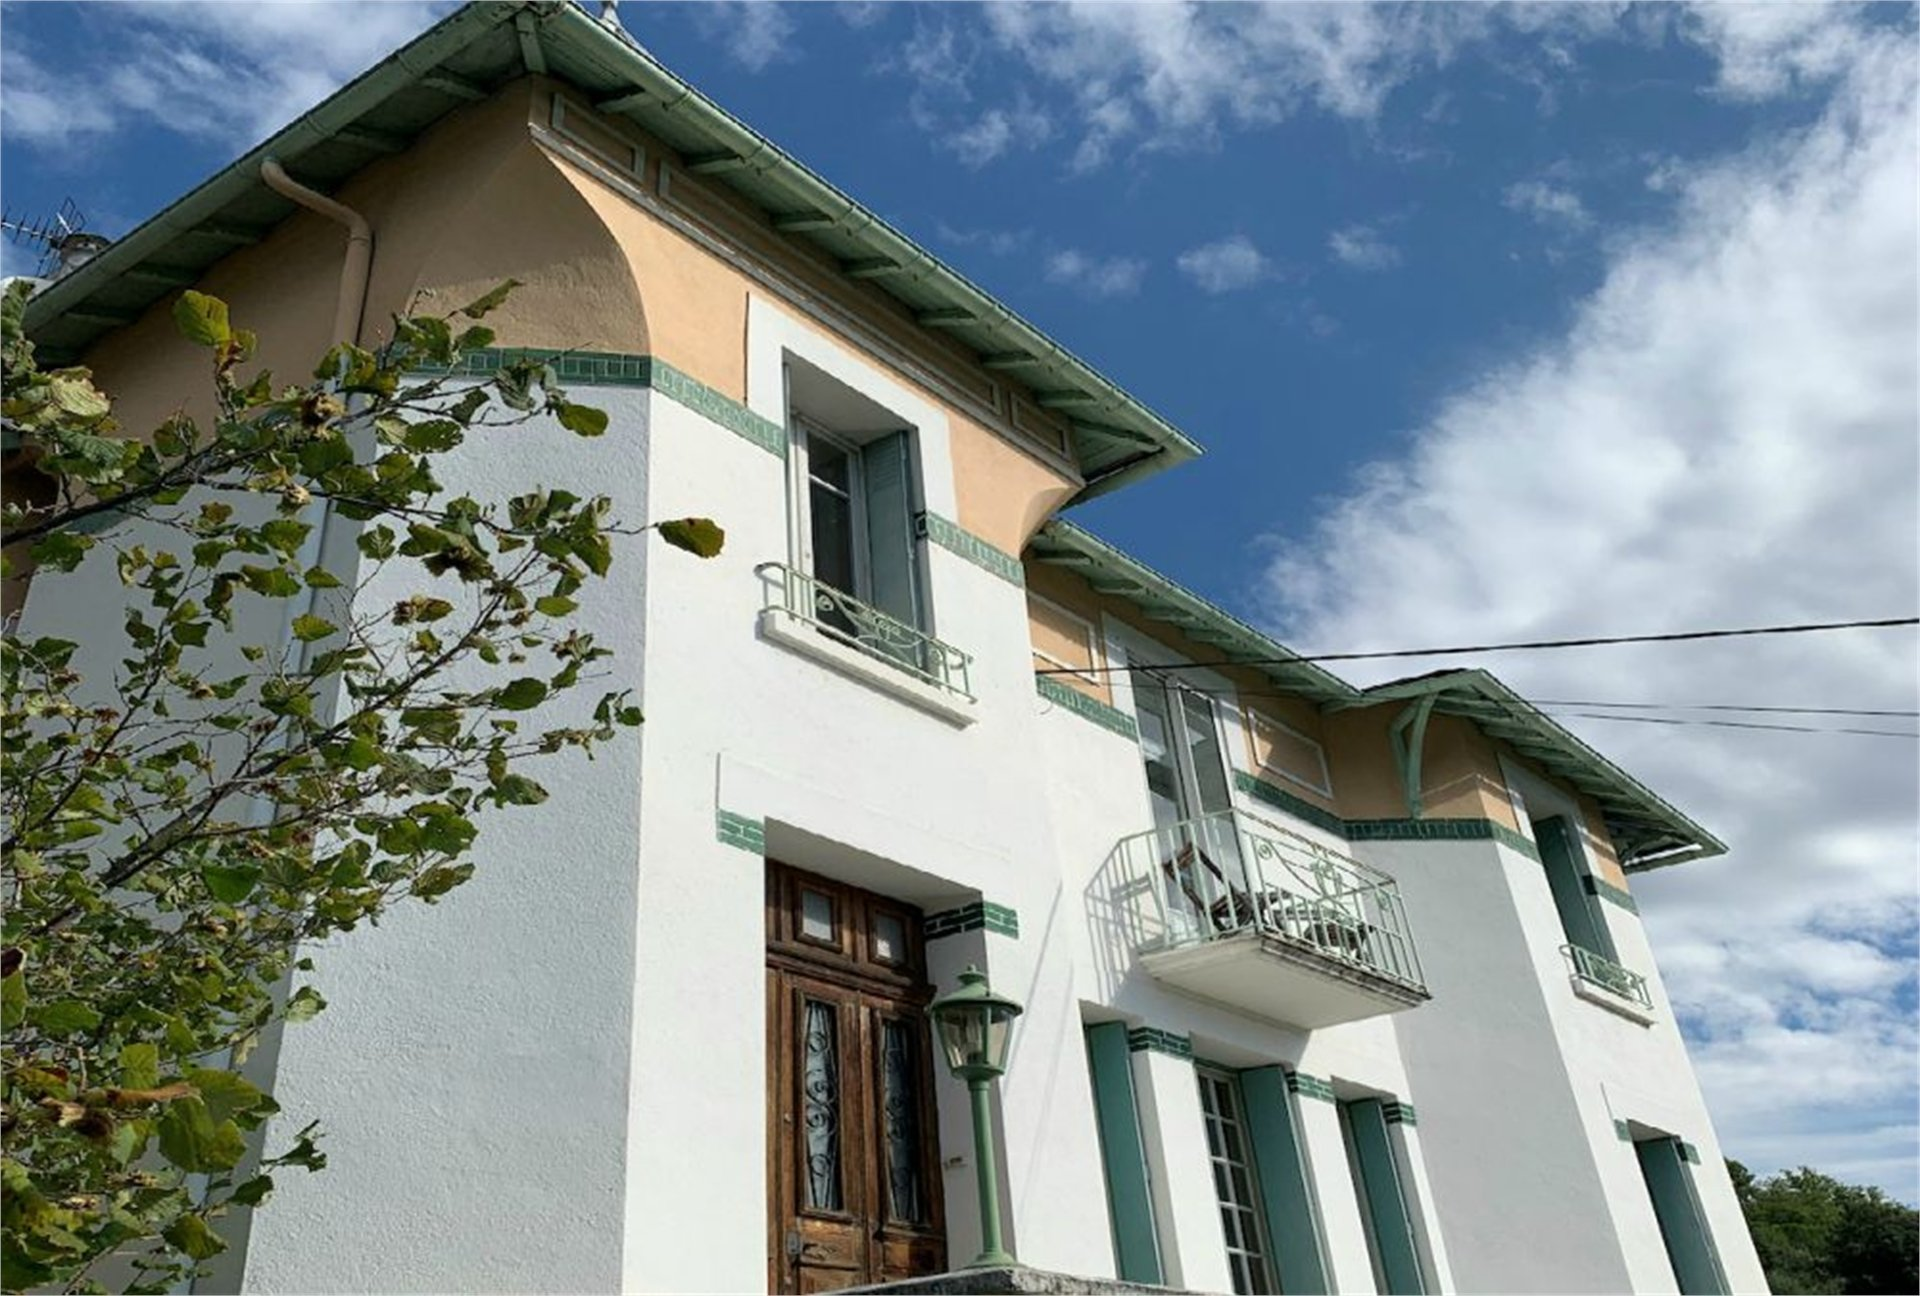 BEAUTIFUL MAISON BOURGEOISE WITH GARDEN AND POOL, QUILLAN